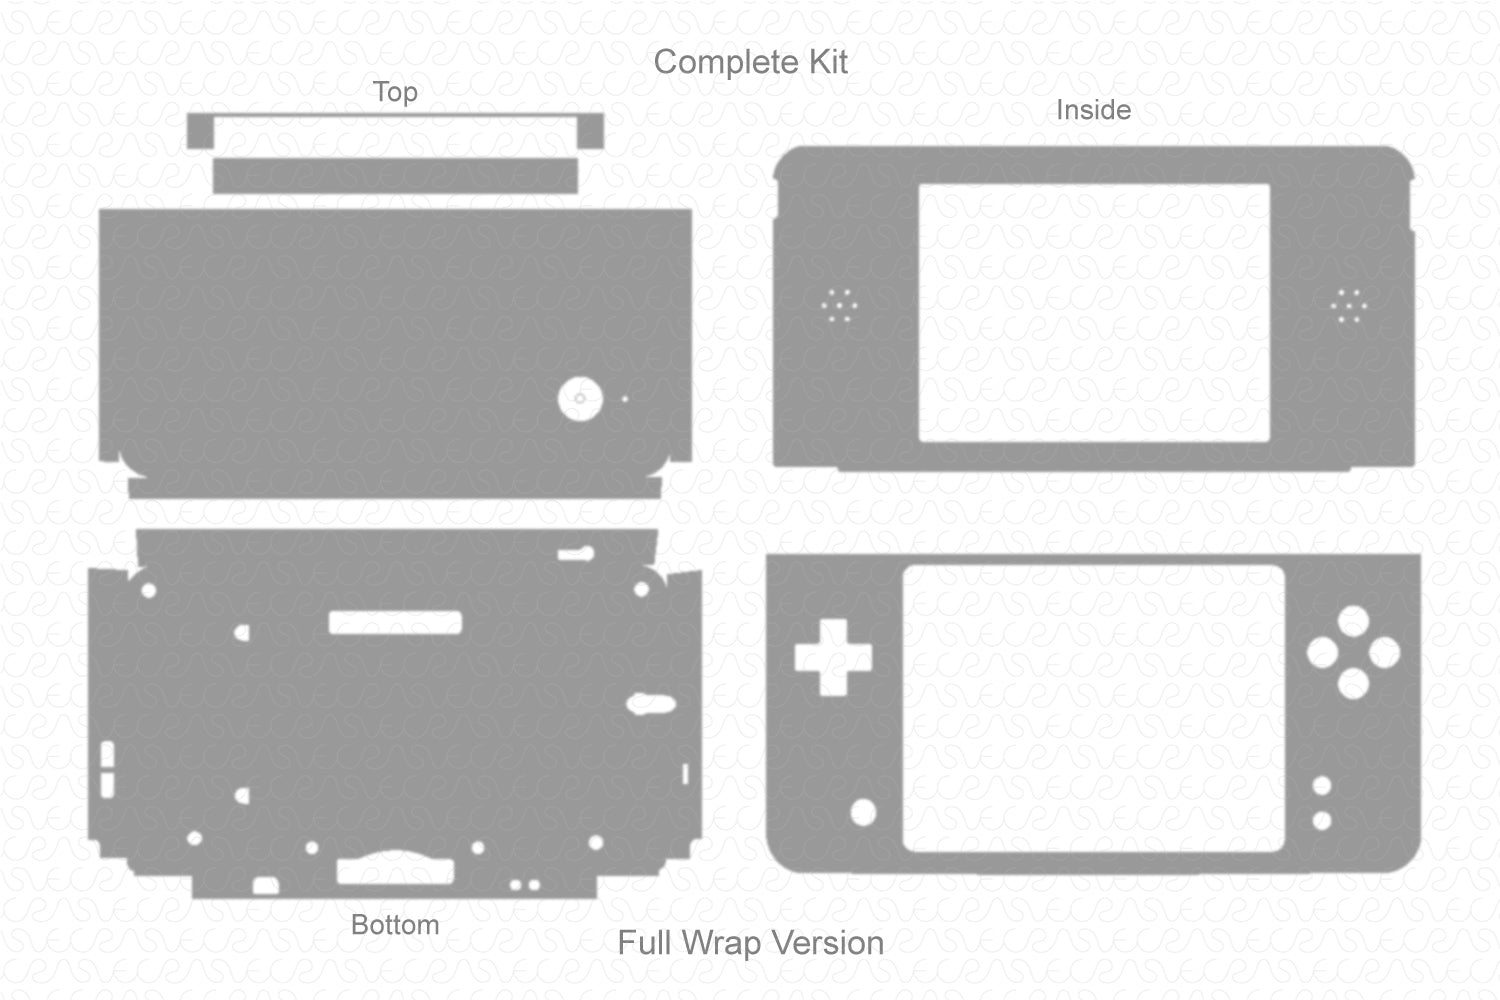 Nintendo dsi XL Handheld Gaming Console (2009) Vector Cut File Template